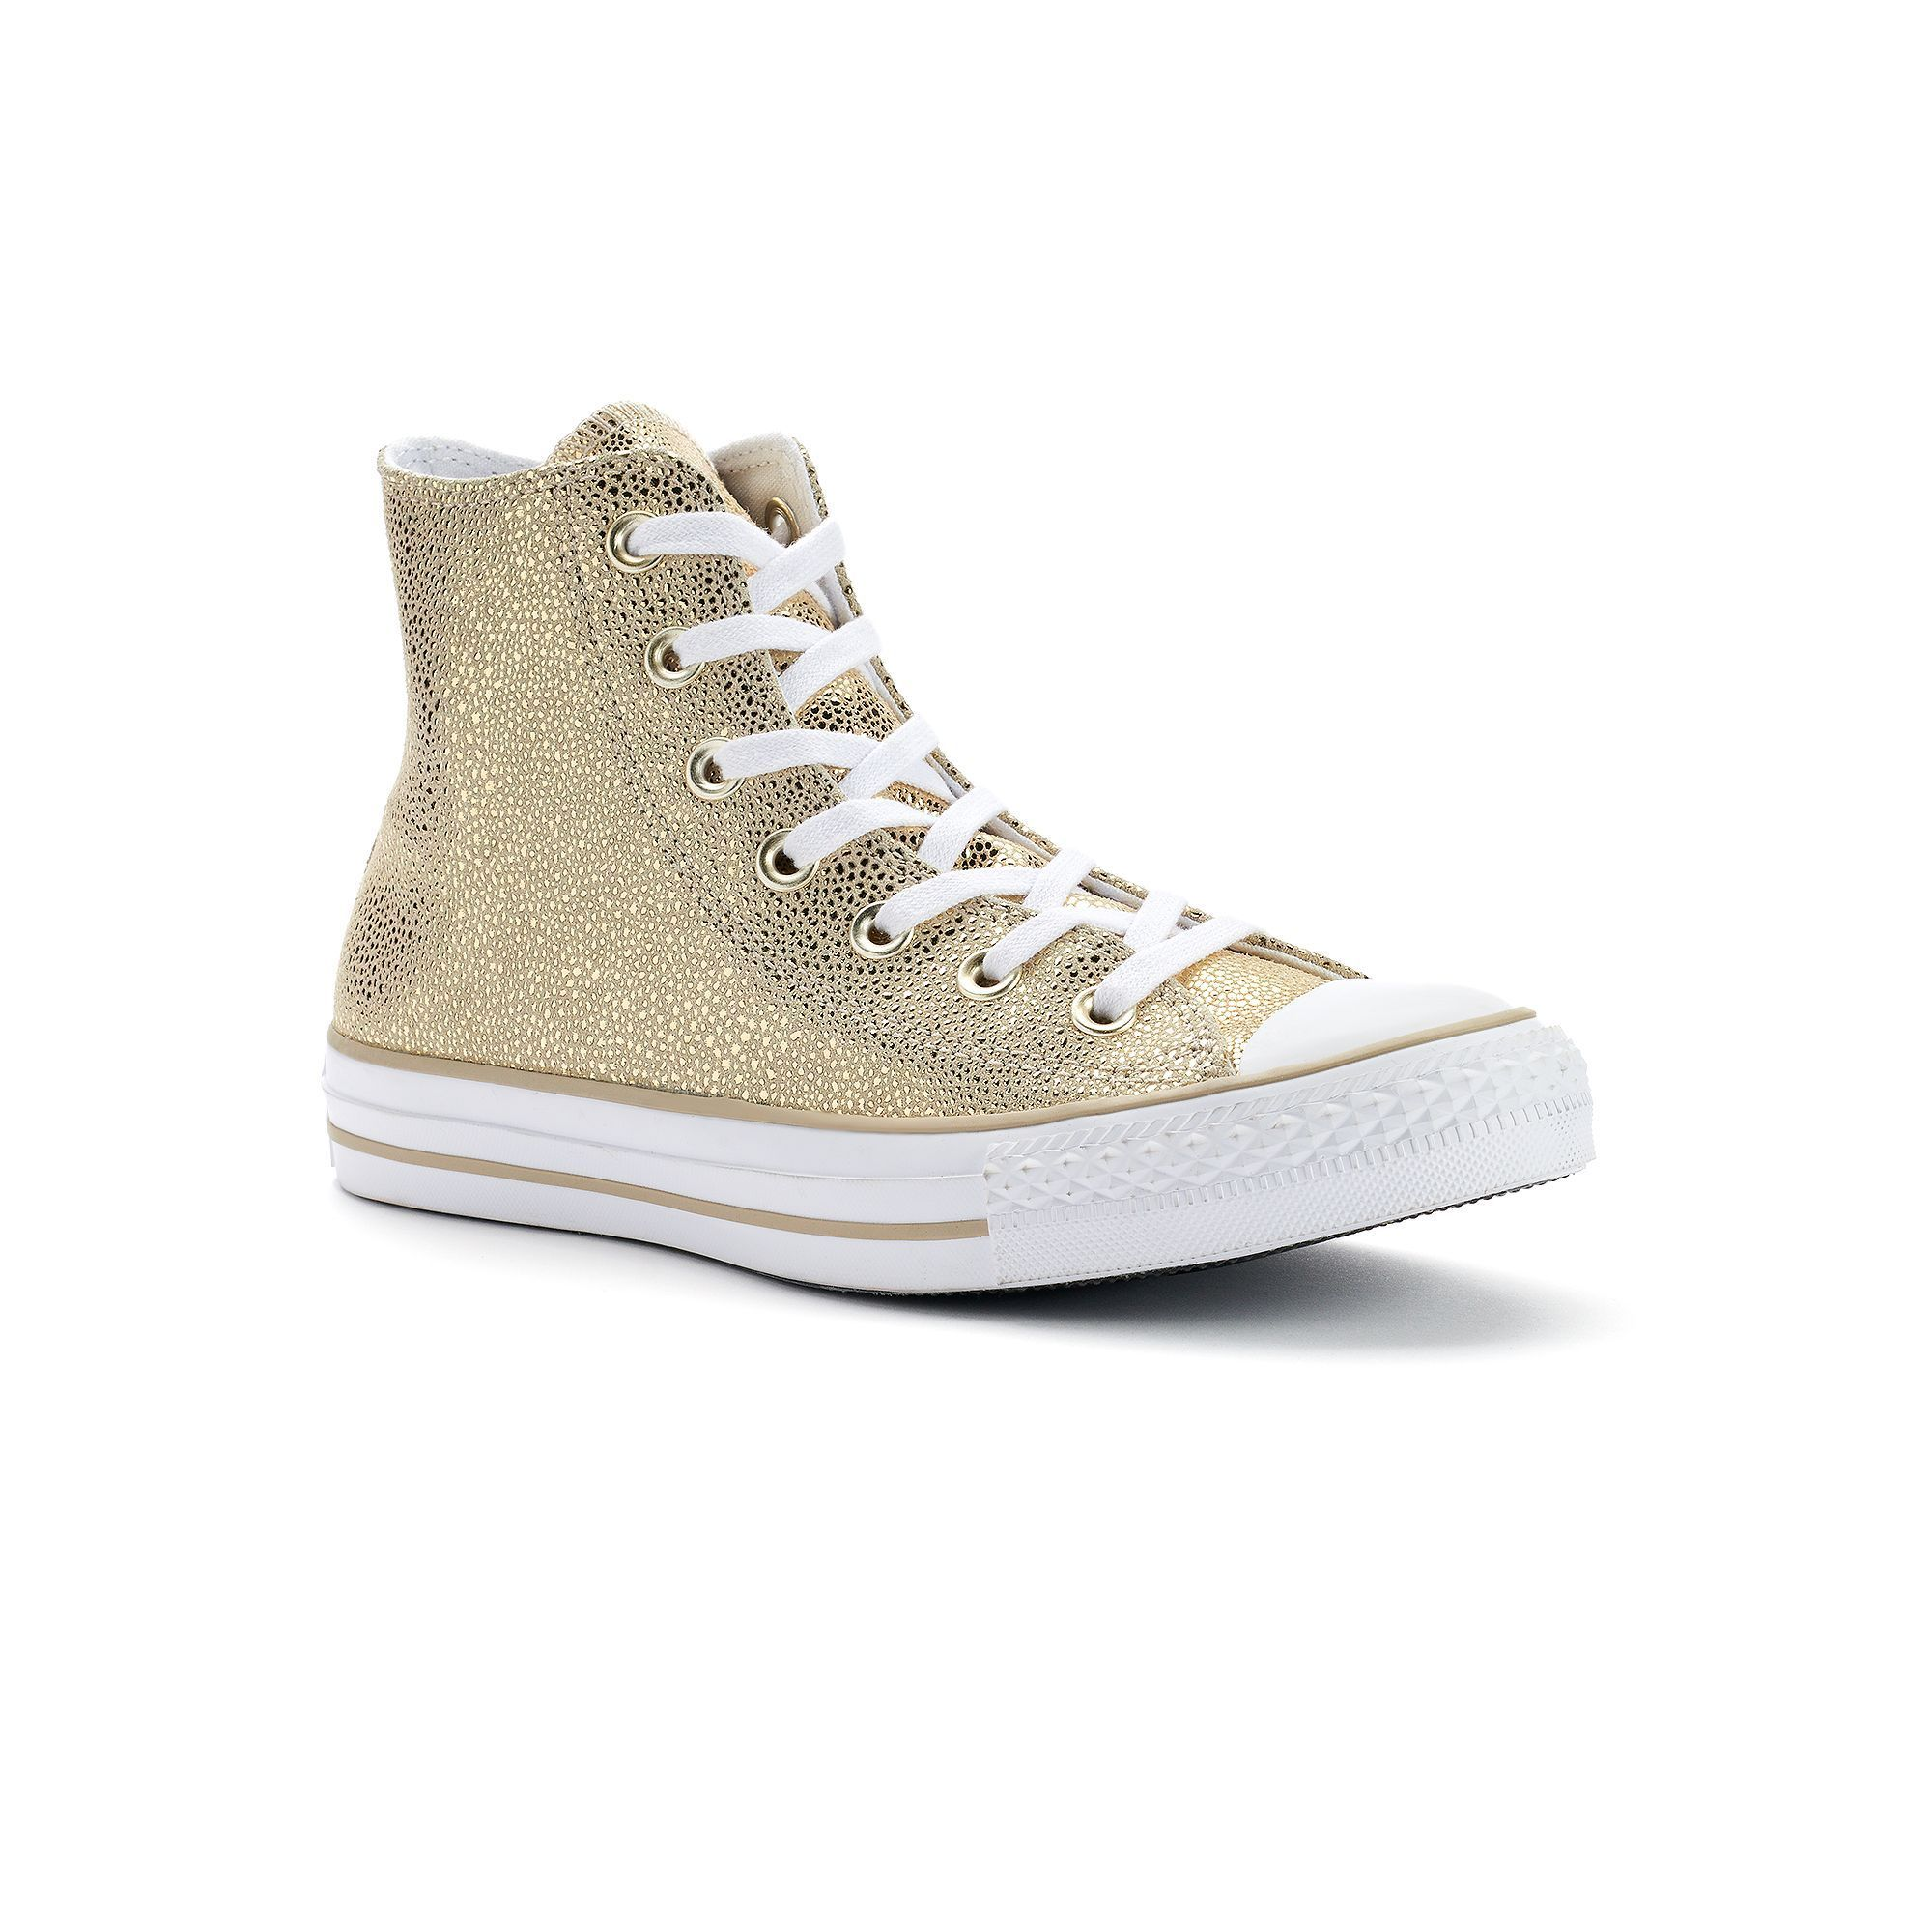 29968c391a19e1 Women s Converse Chuck Taylor All Star Stingray Metallic High-Top Sneakers